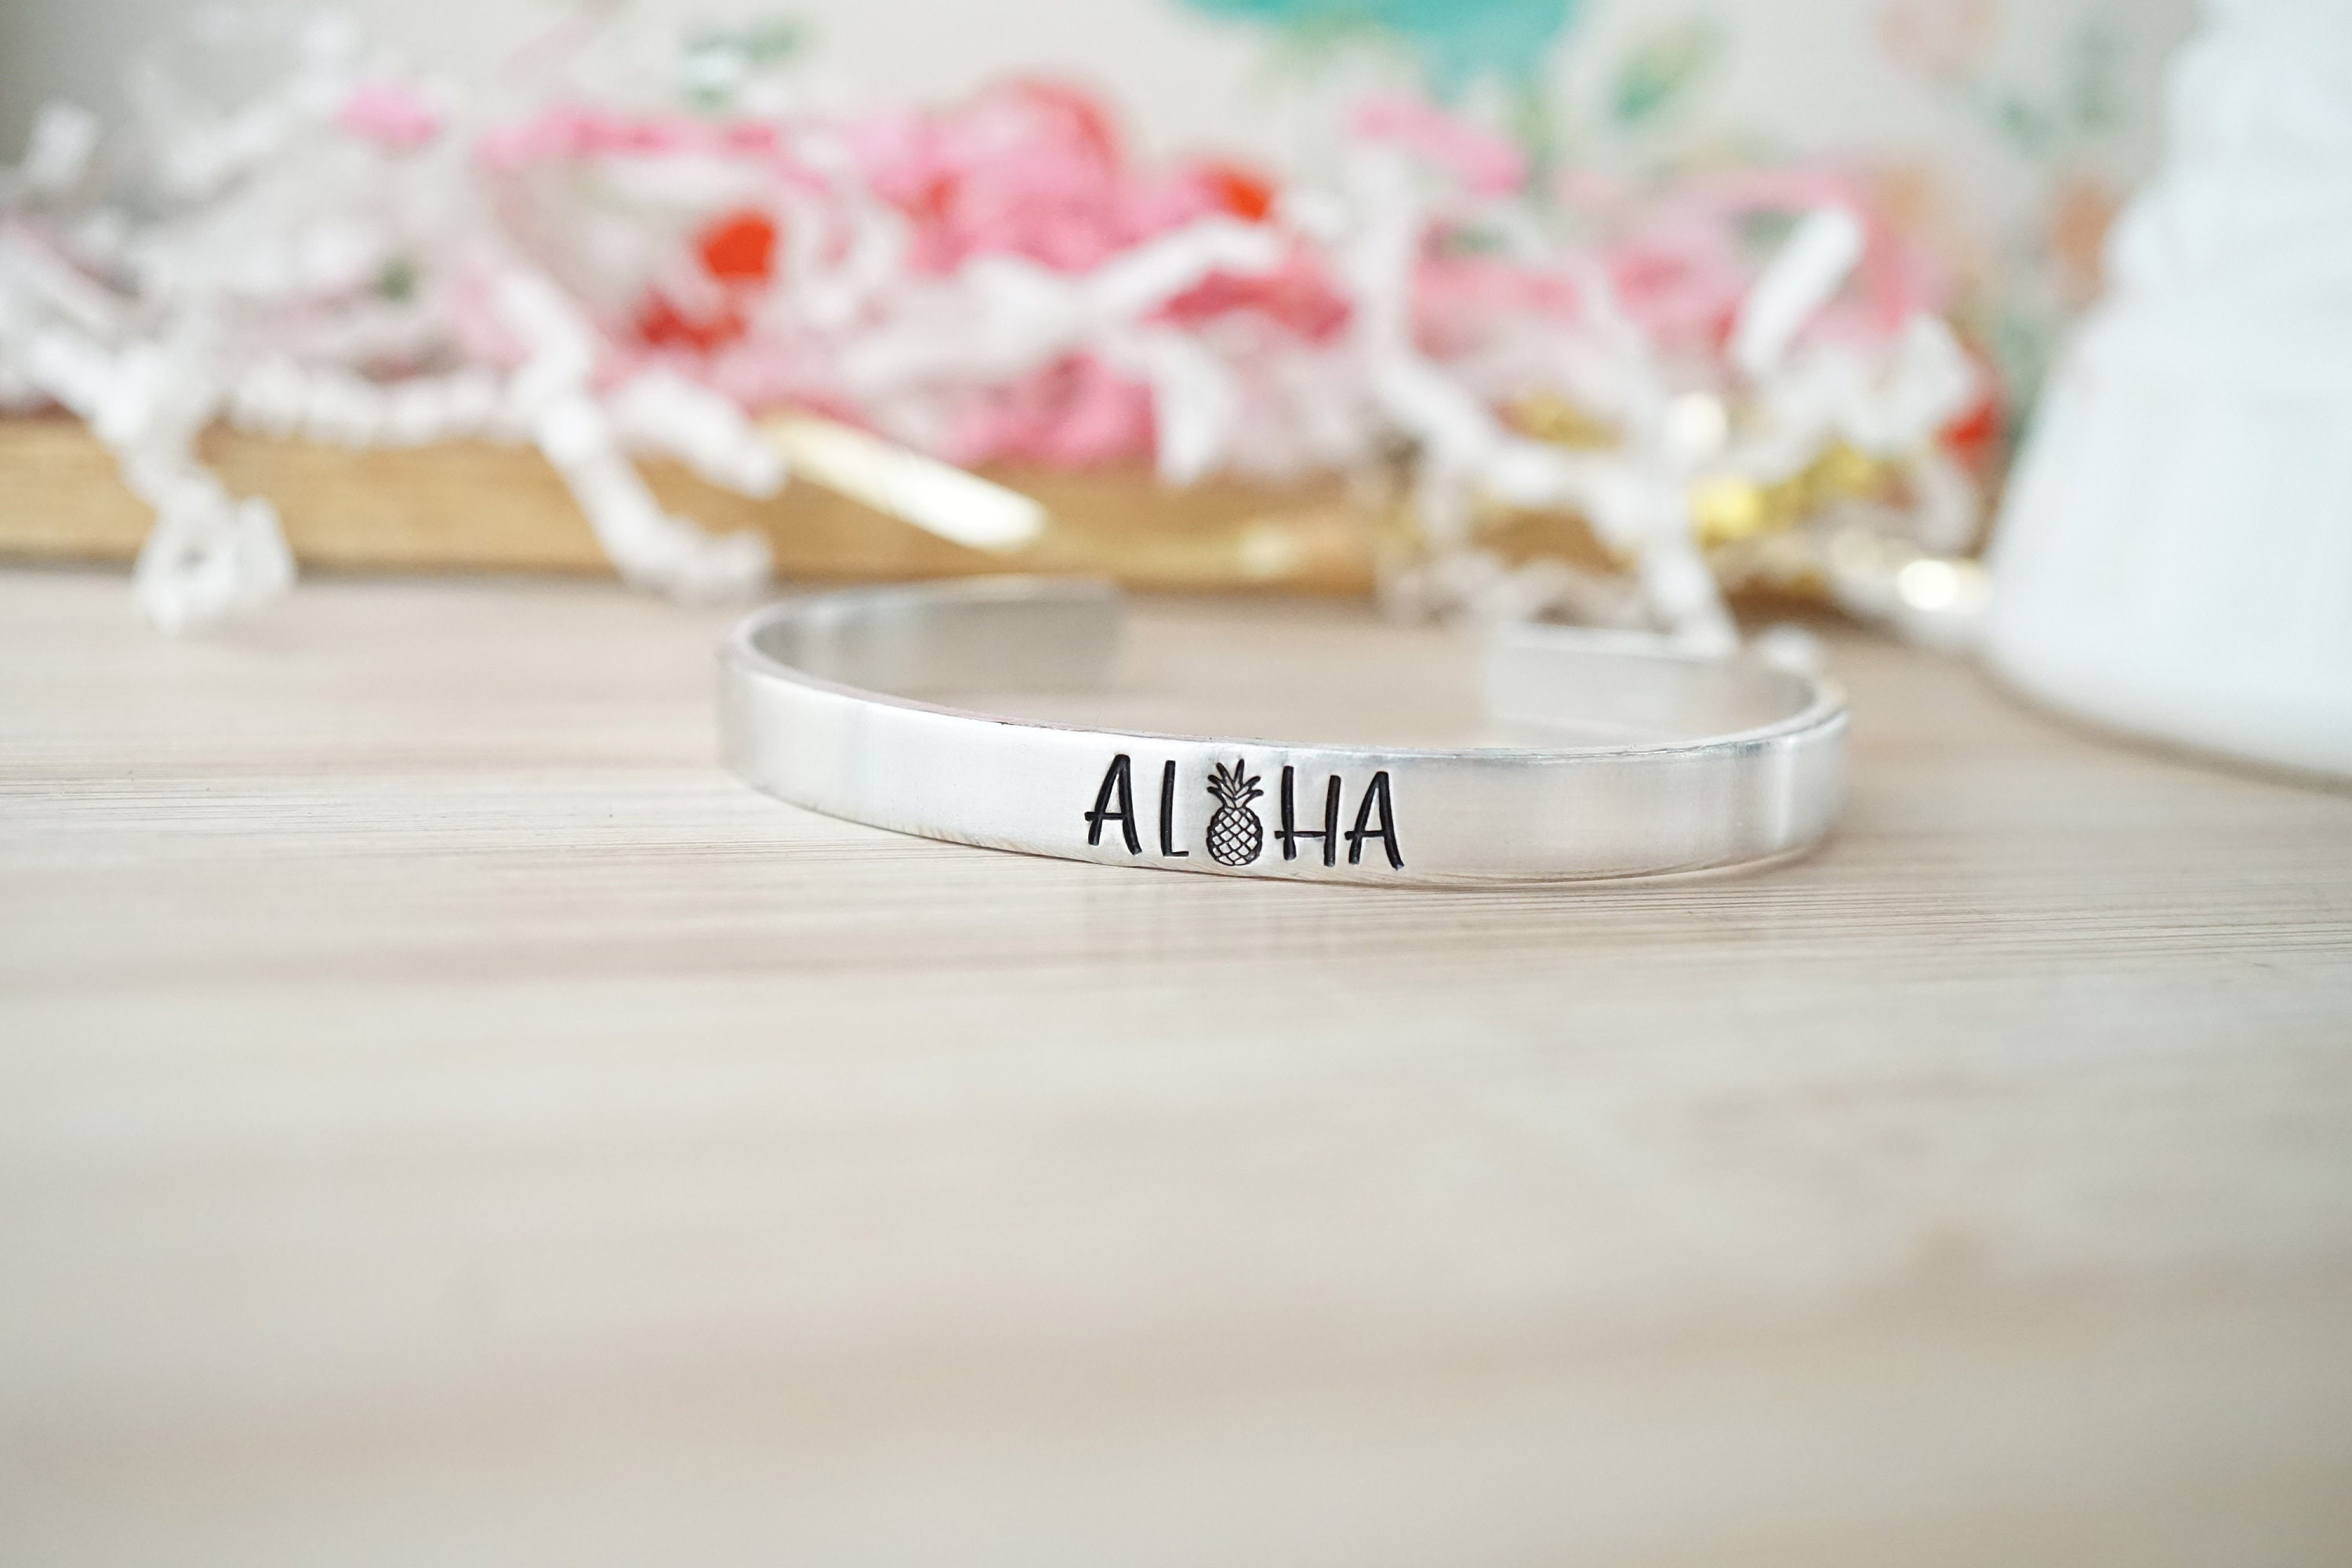 Aloha Cuff Bracelet - Hawaii Life - Hawaii Bangles - Hawaiian Jewelry - Gifts for Her - Gifts for Women - Island Jewelry - Island Girl